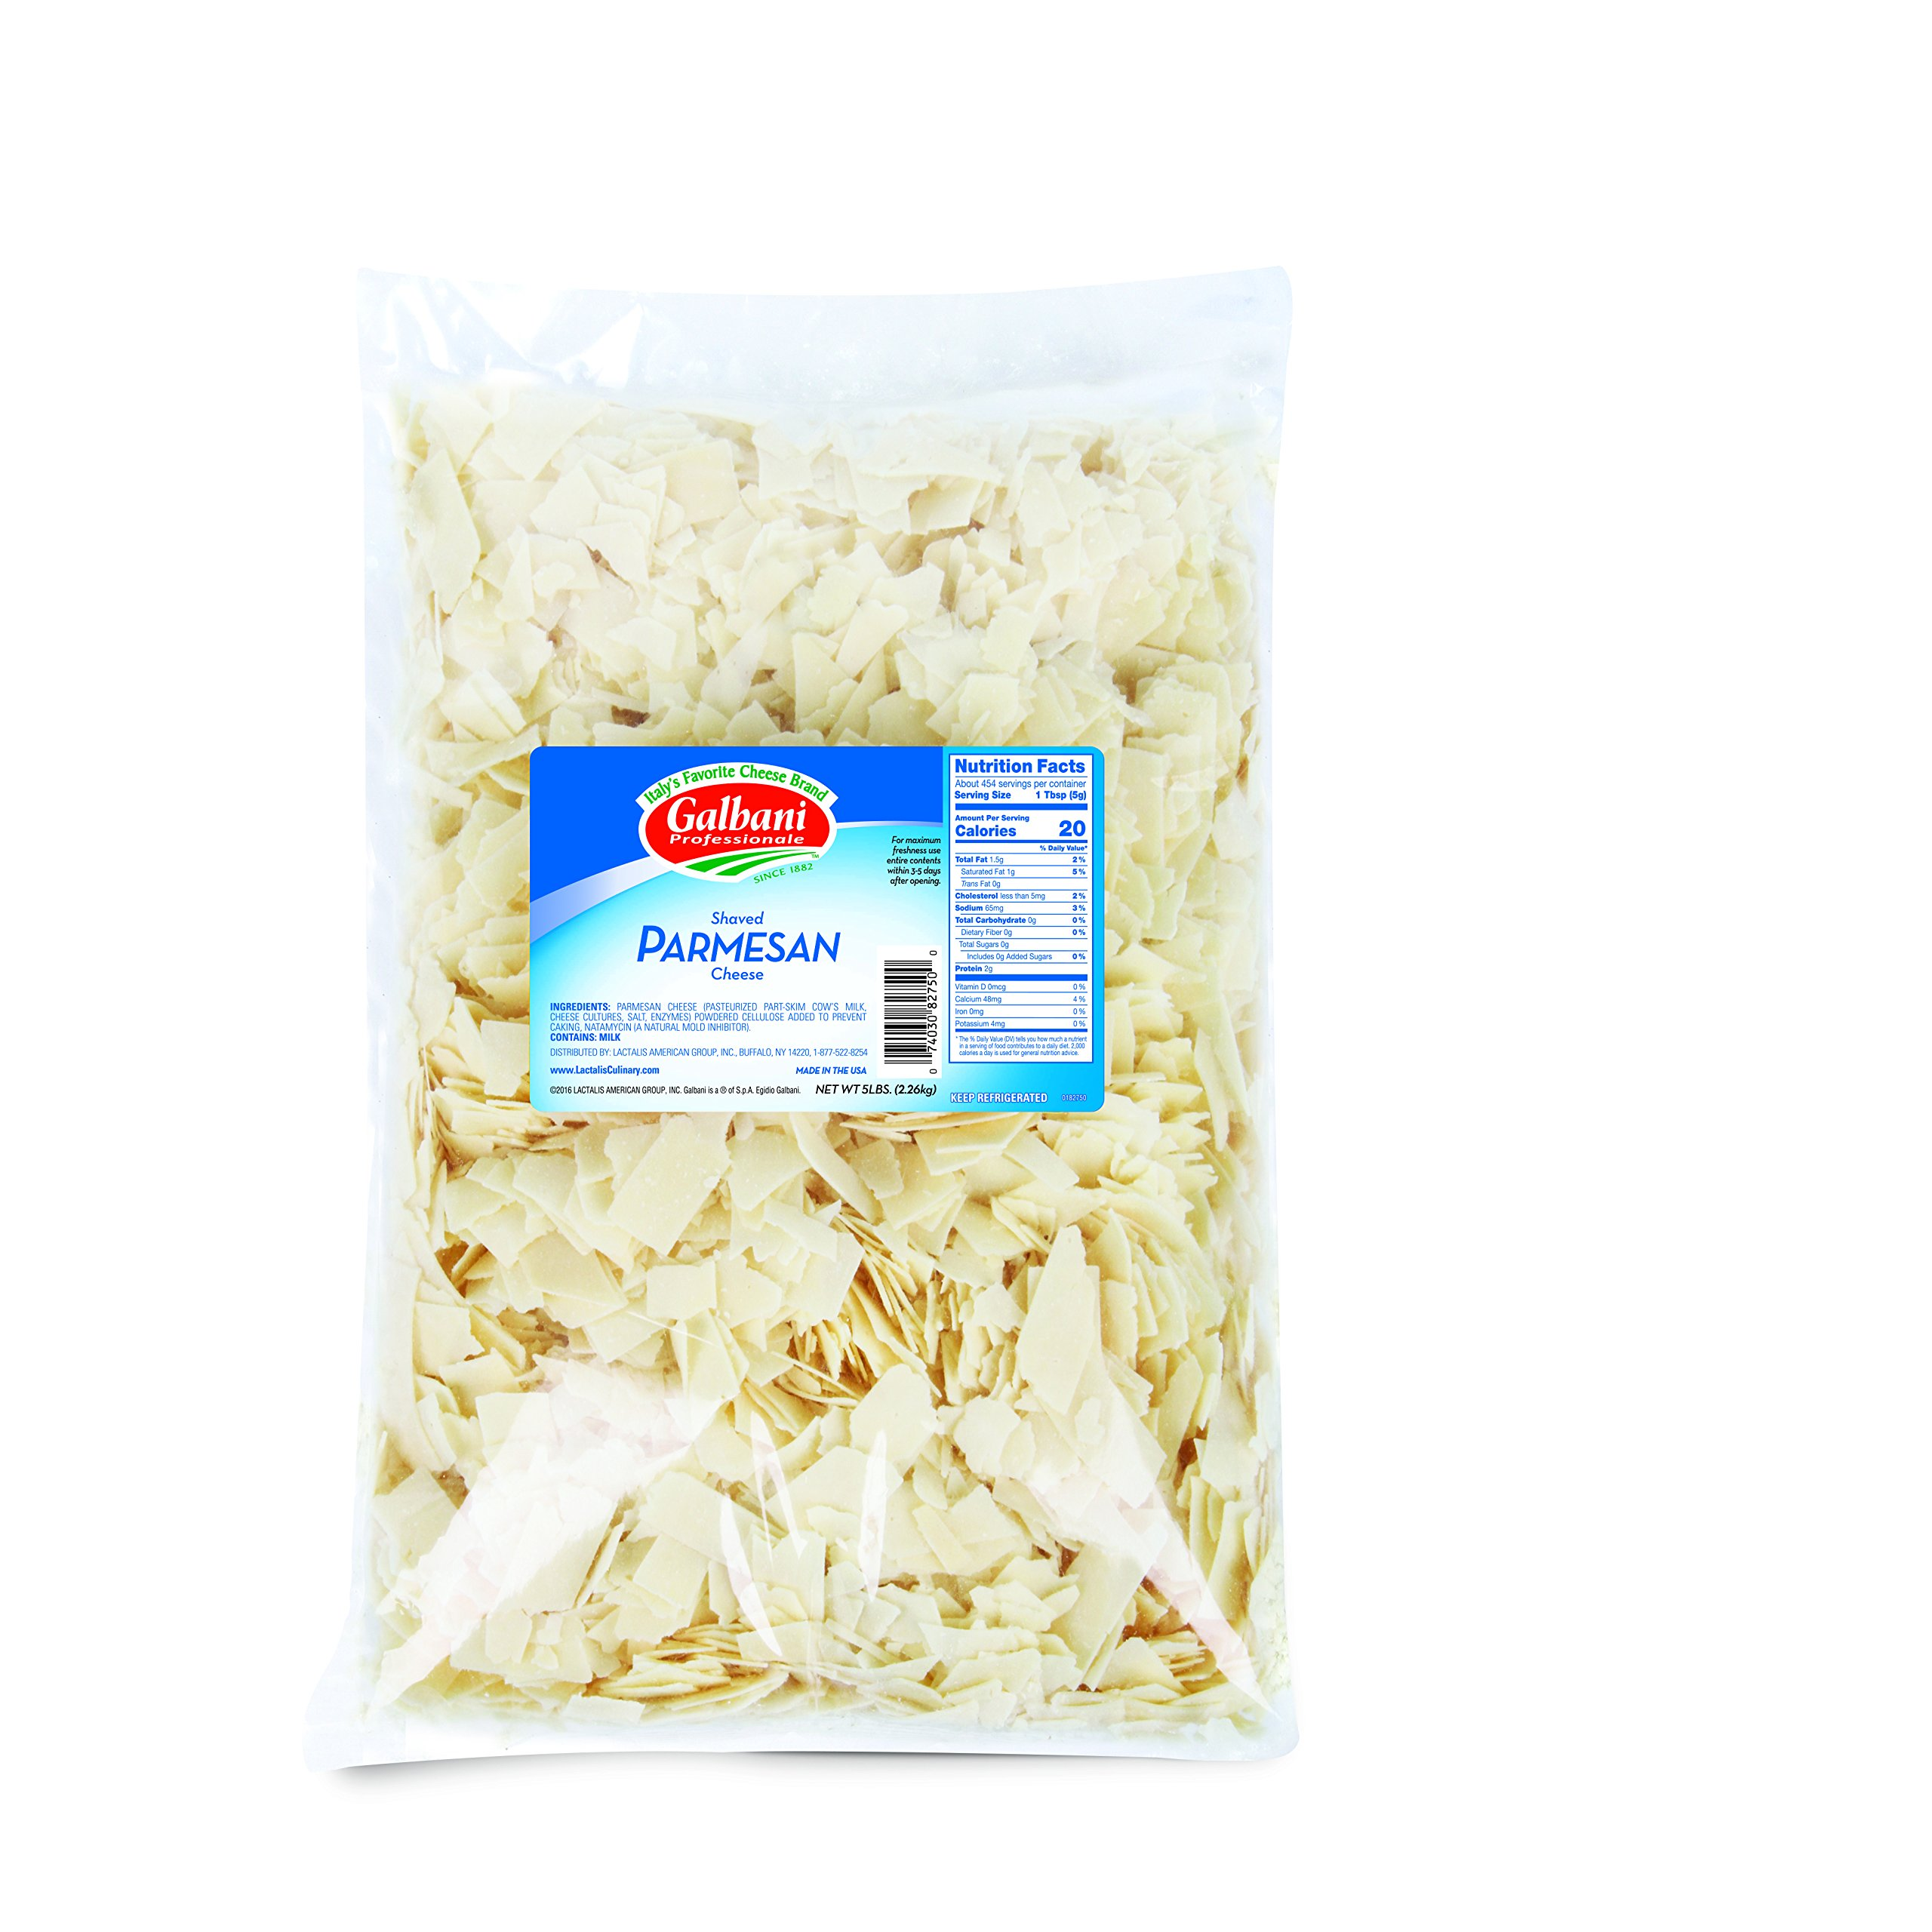 Galbani Professional Shaved Parmesan Cheese 5 lb, Pack of 4 by Galbani (Image #1)